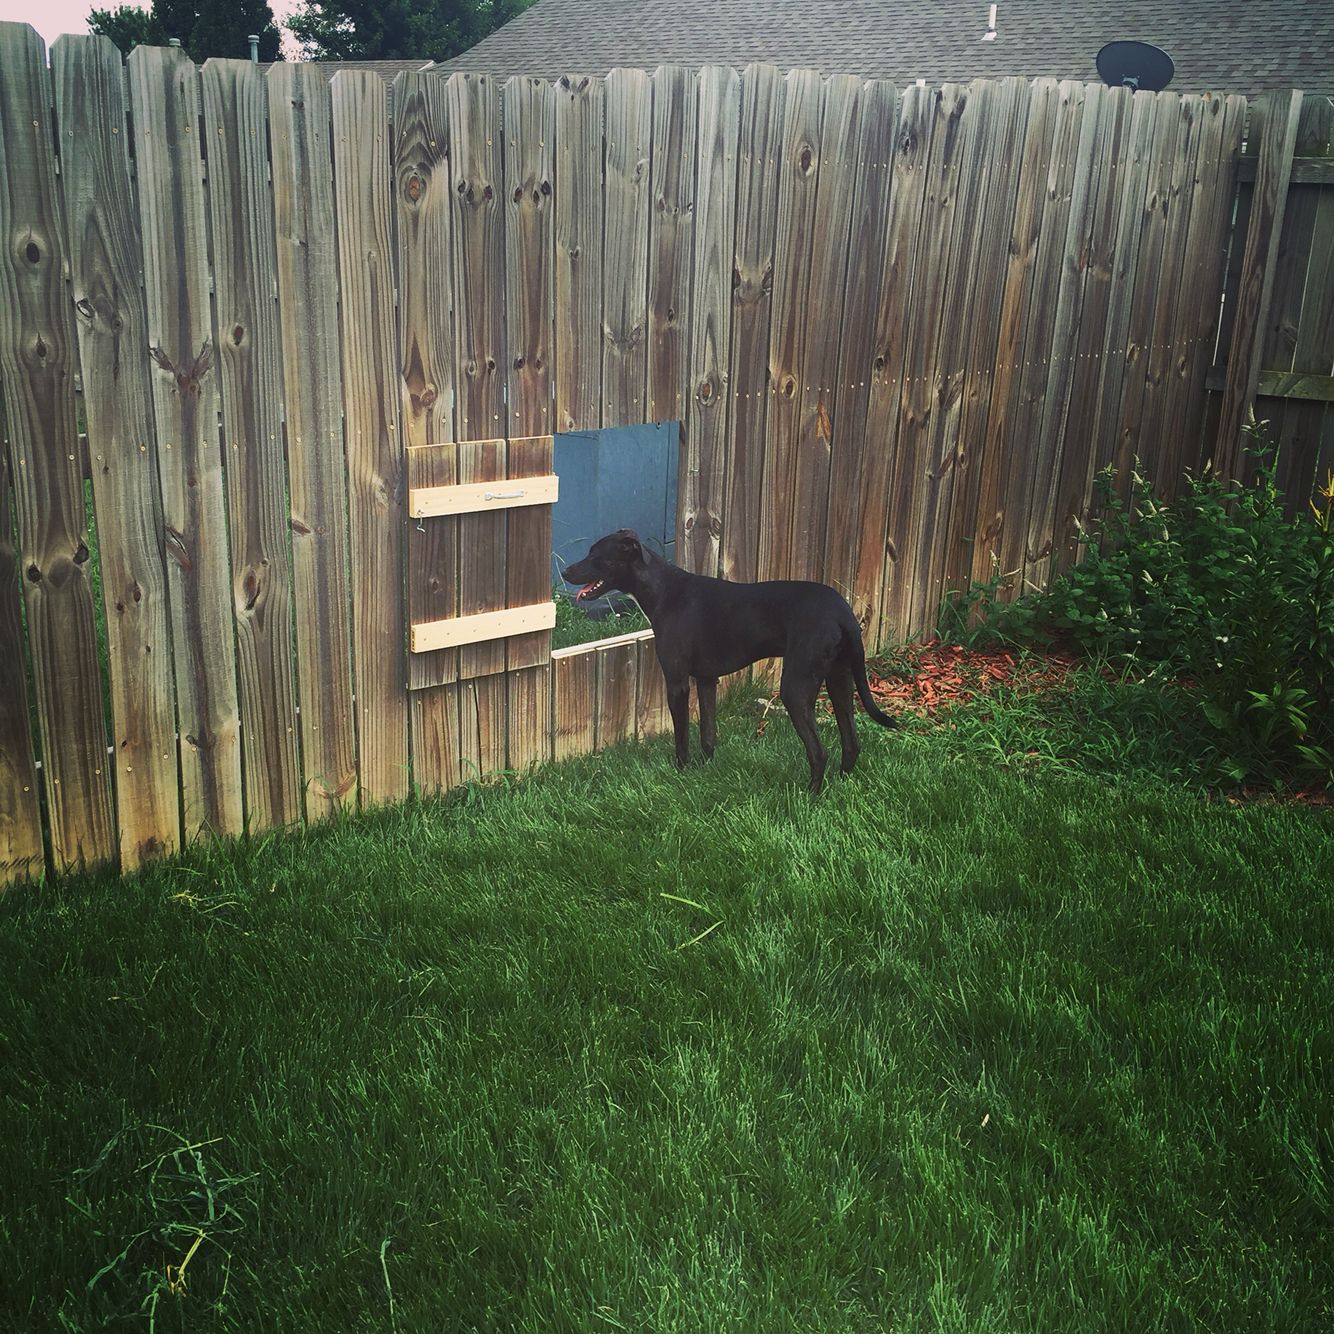 Doggy Door In Fence To Neighbors So Dogs Can Play Dog Fence